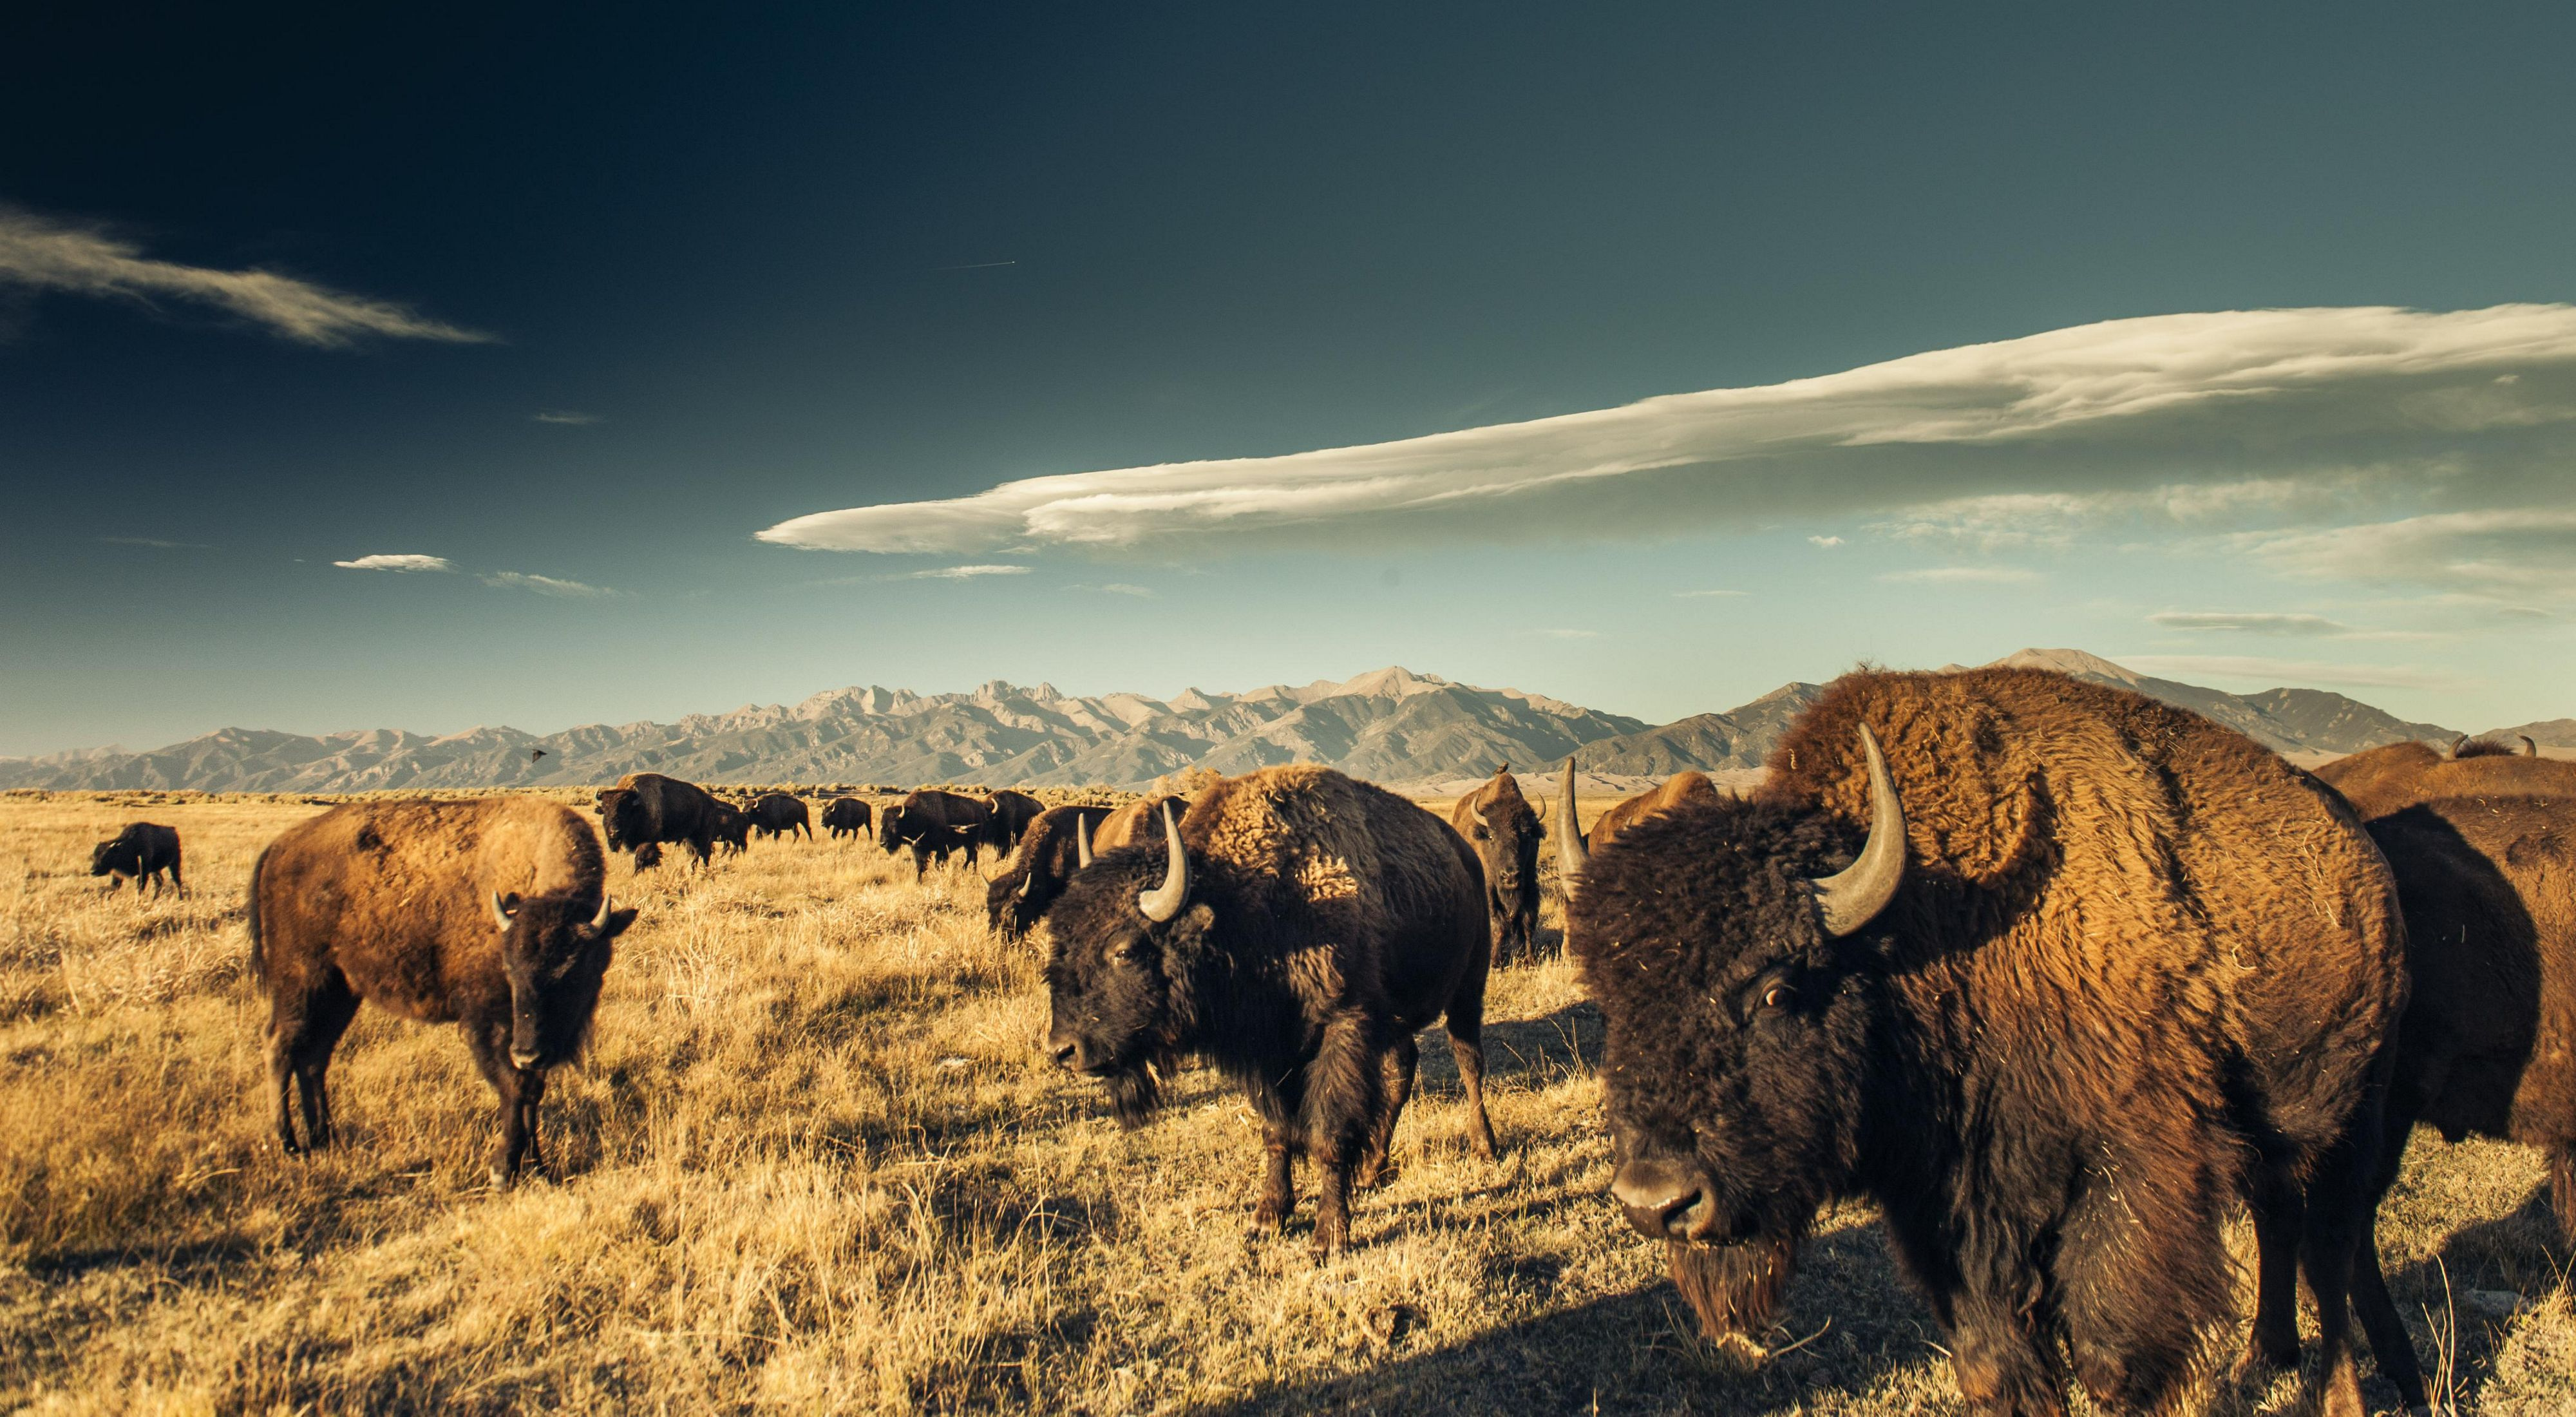 A herd of bison grazing in the San Luis Valley.